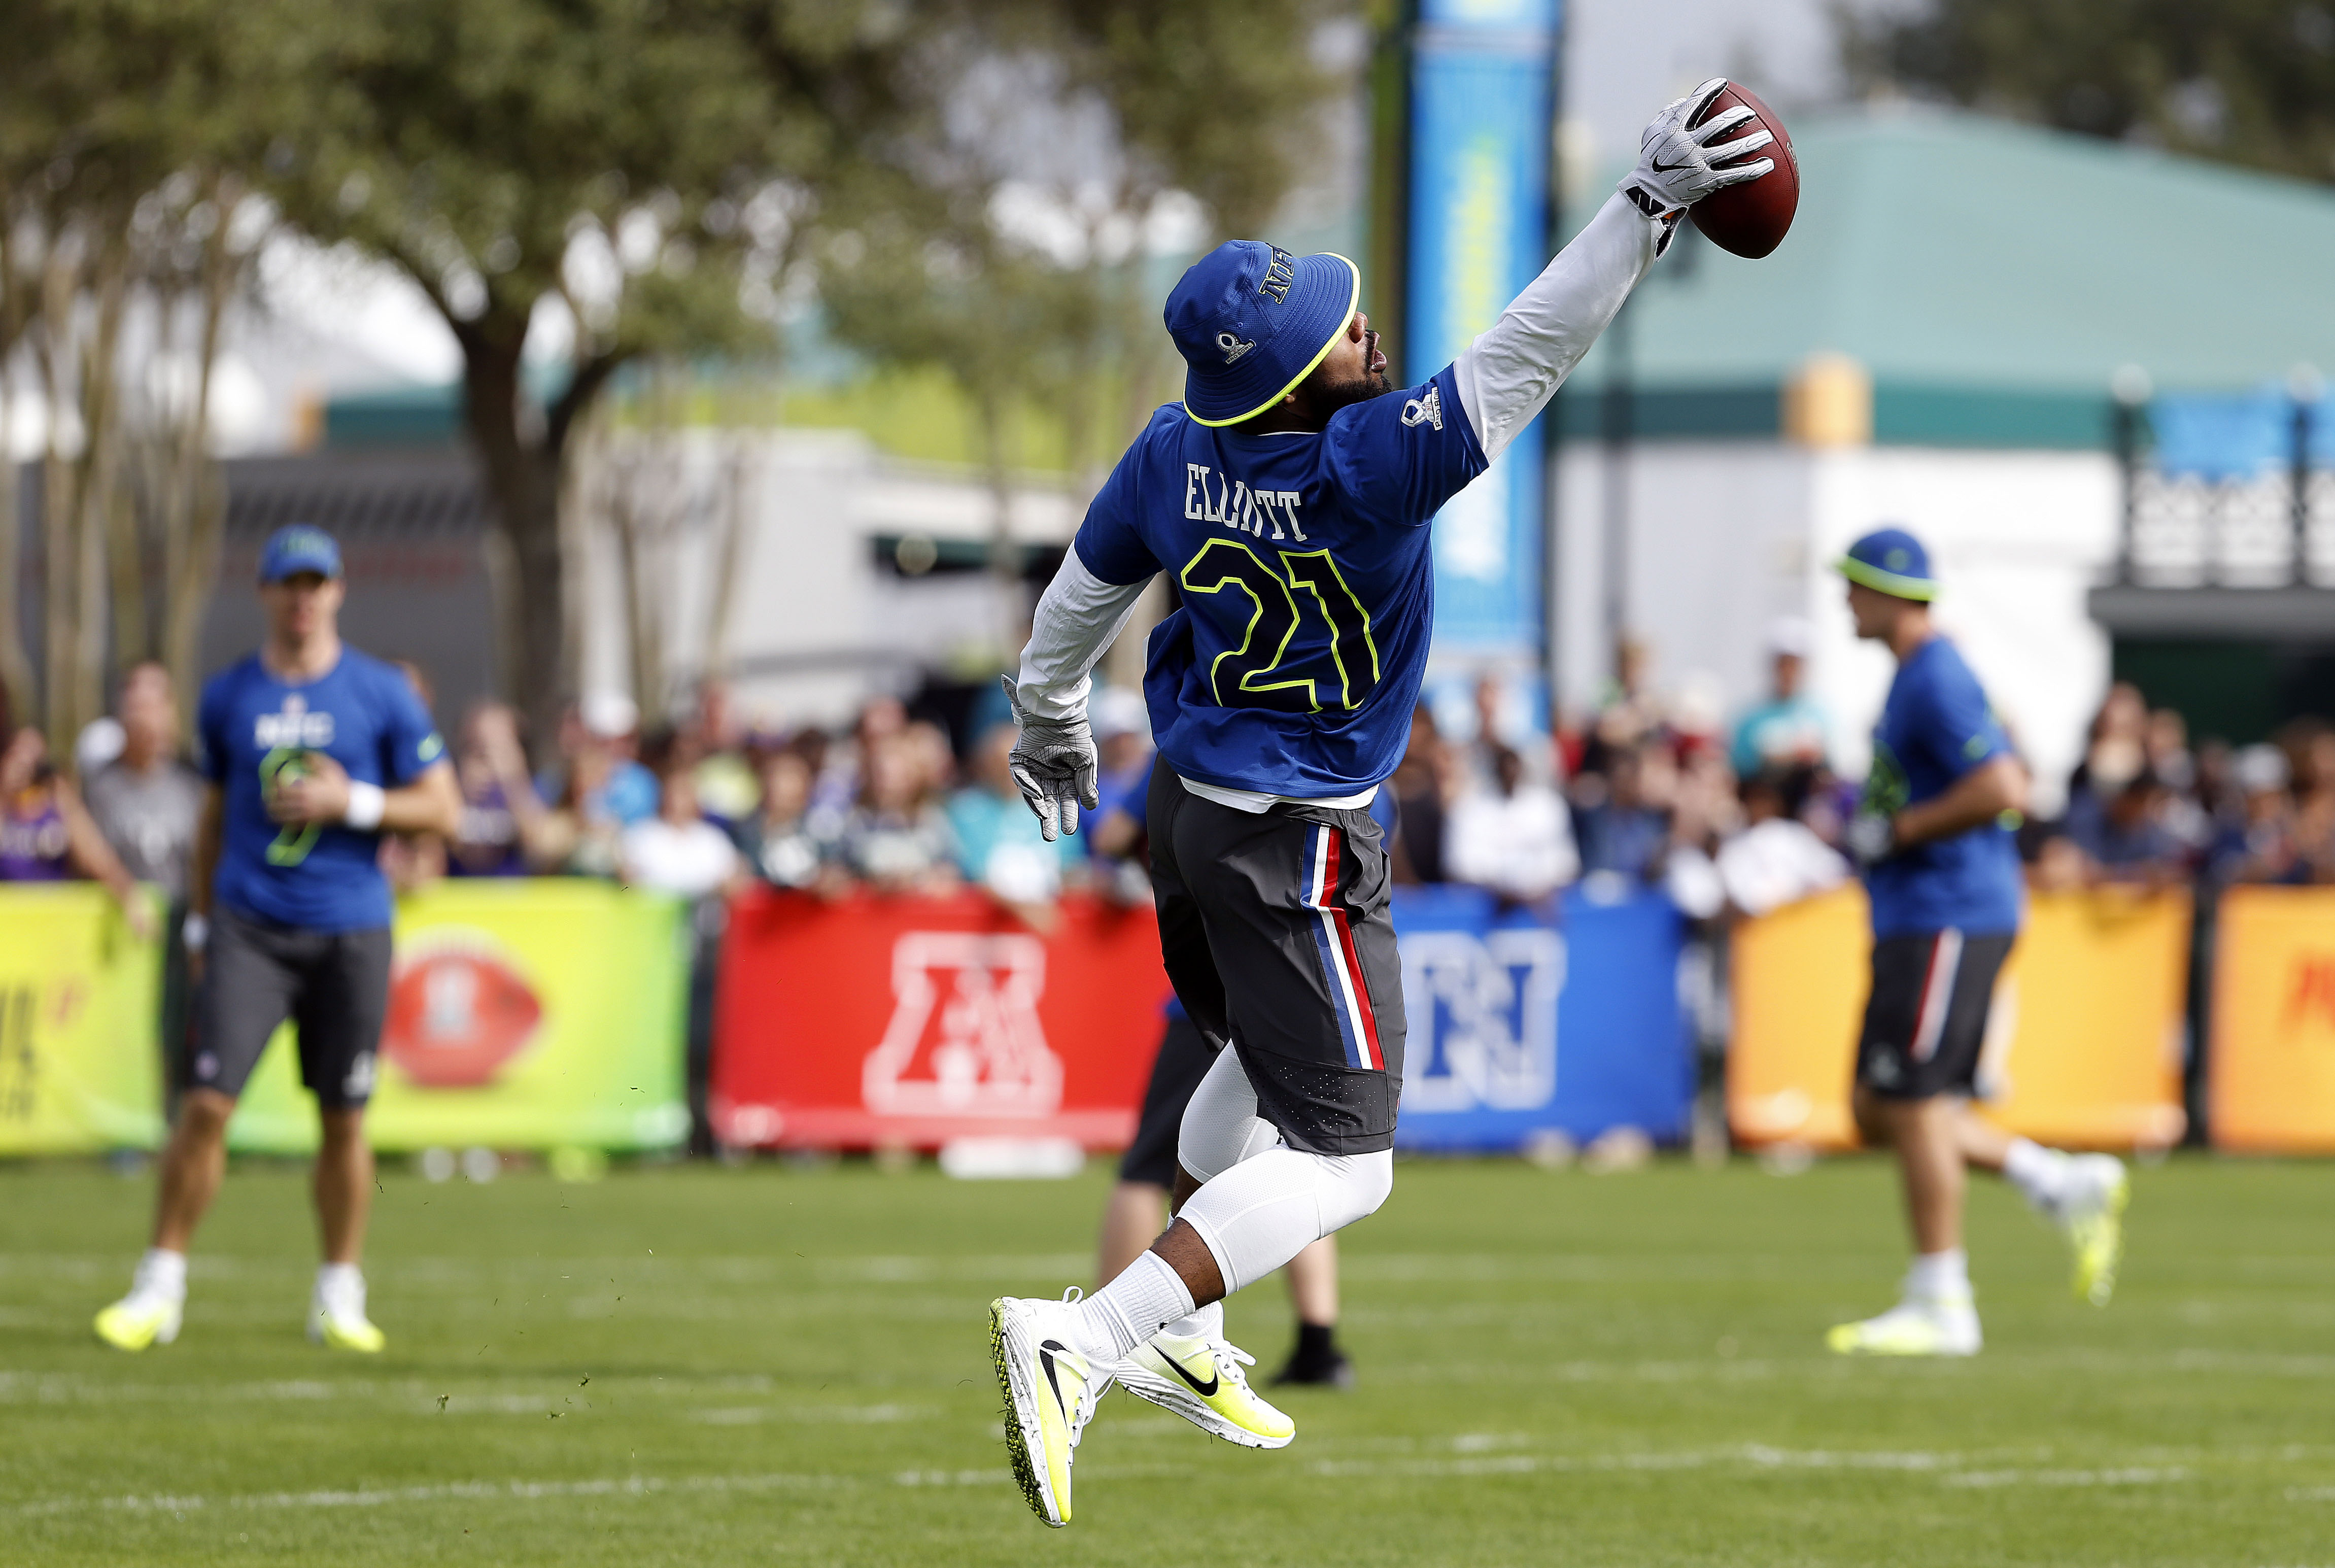 5bfdca167 Pro Bowl  5 ways to make the NFL All-Star game fun again - Page 4